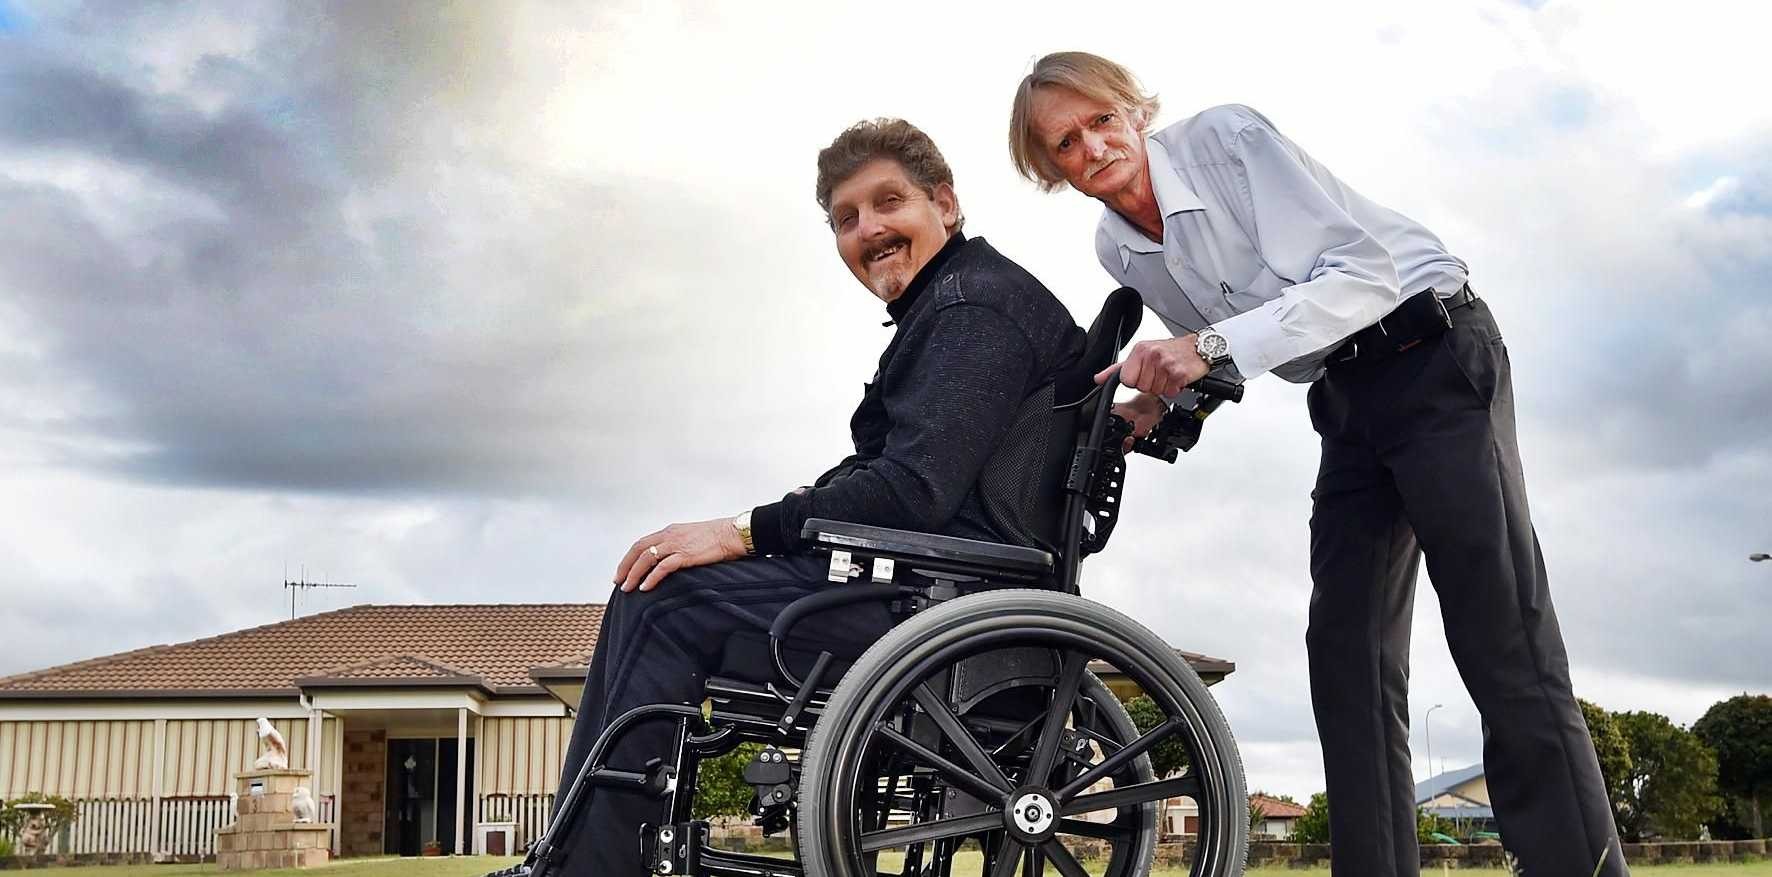 FOOTPATHS ON THE AGENDA: Carer Kenneth Sengstock pushes client Russell Dreger along the road near his home.